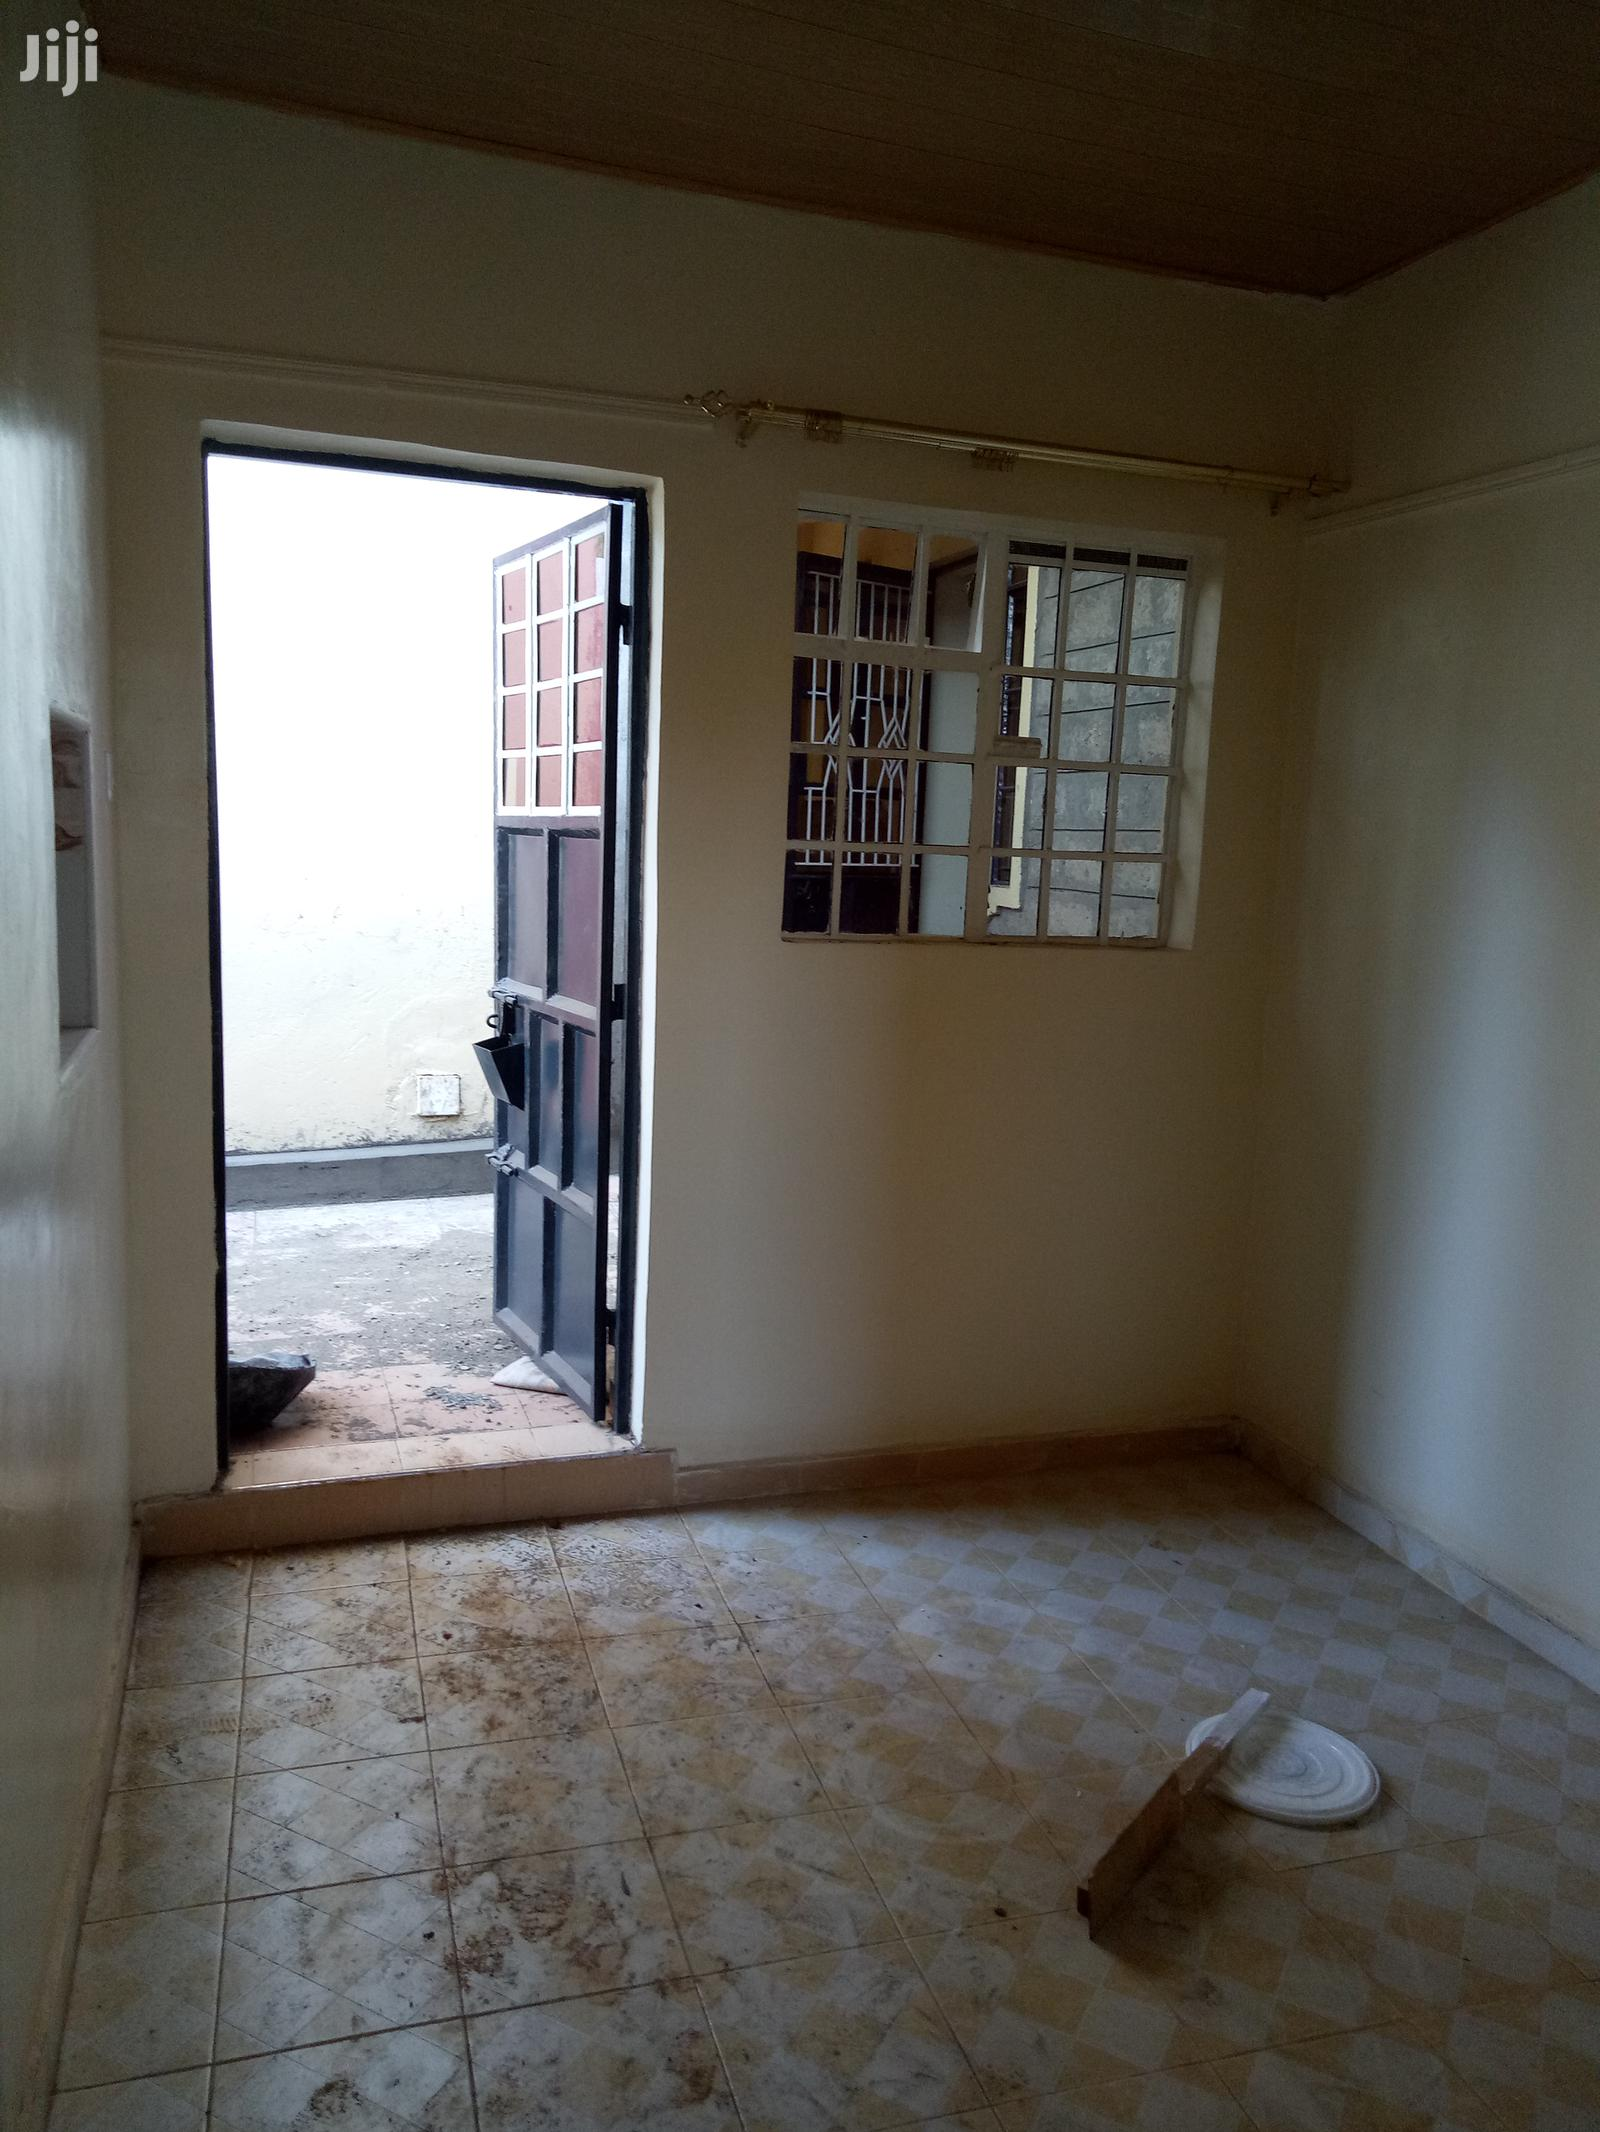 Lower Kabete-mwimuto One Bedroom To Let | Houses & Apartments For Rent for sale in Kabete, Kiambu, Kenya